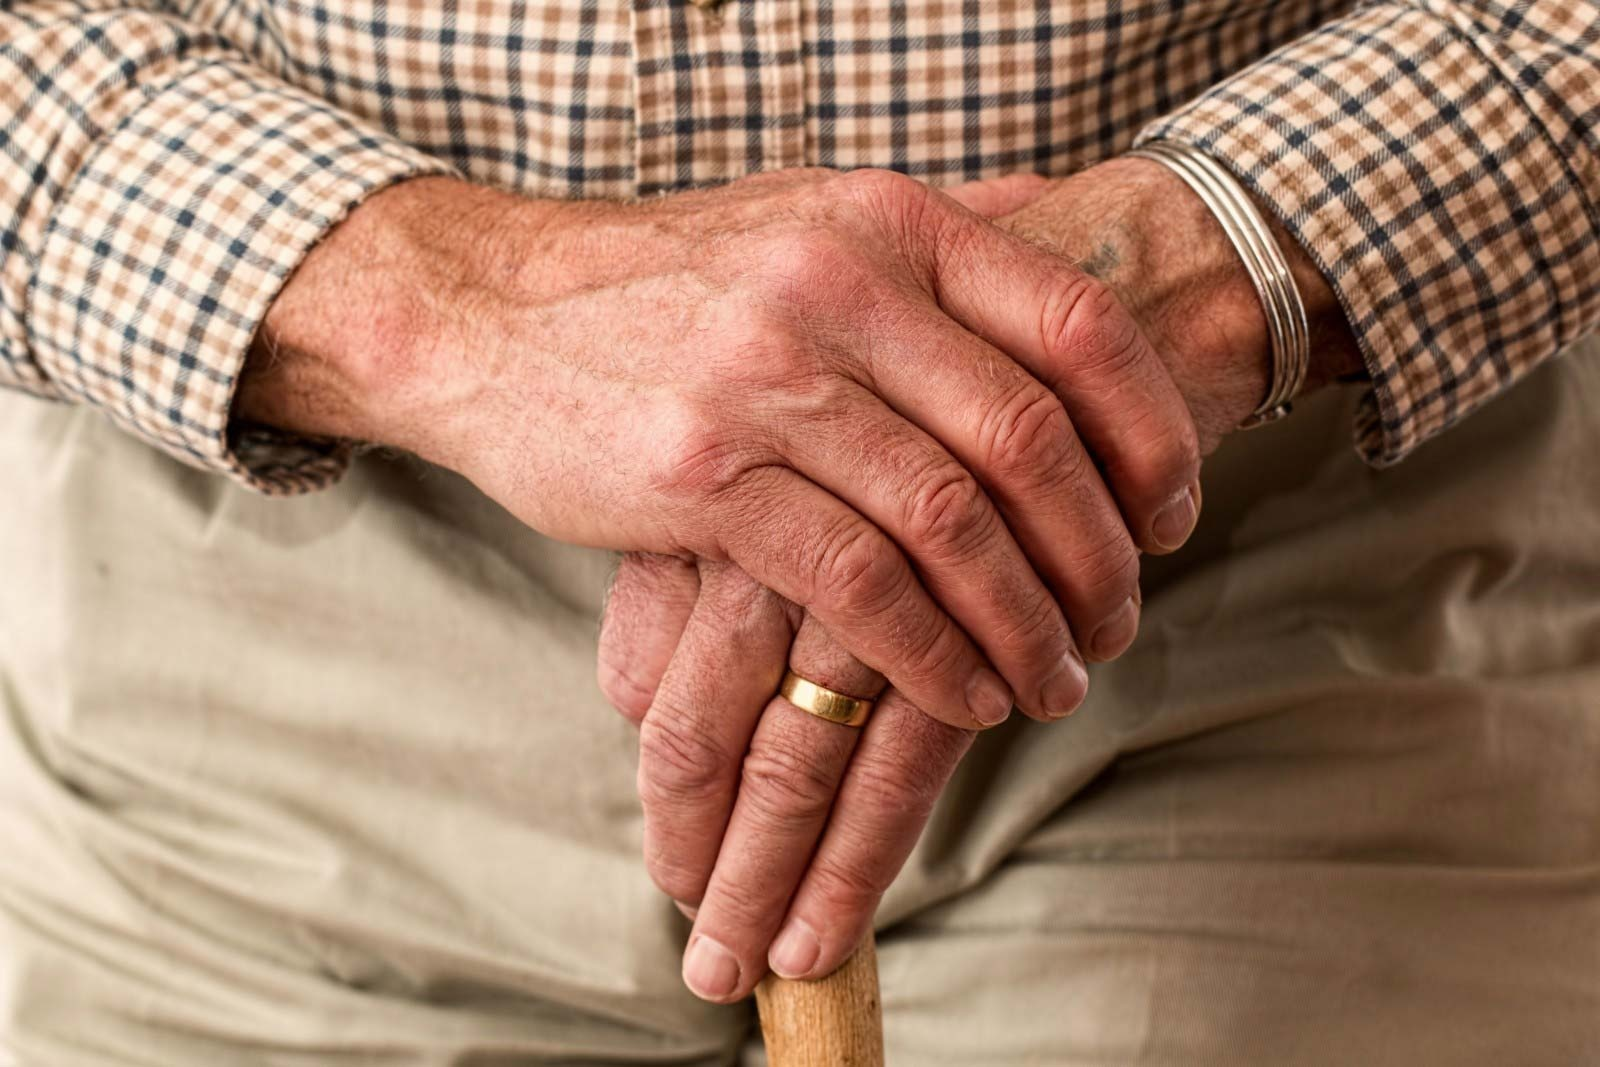 long-term care insurance hands